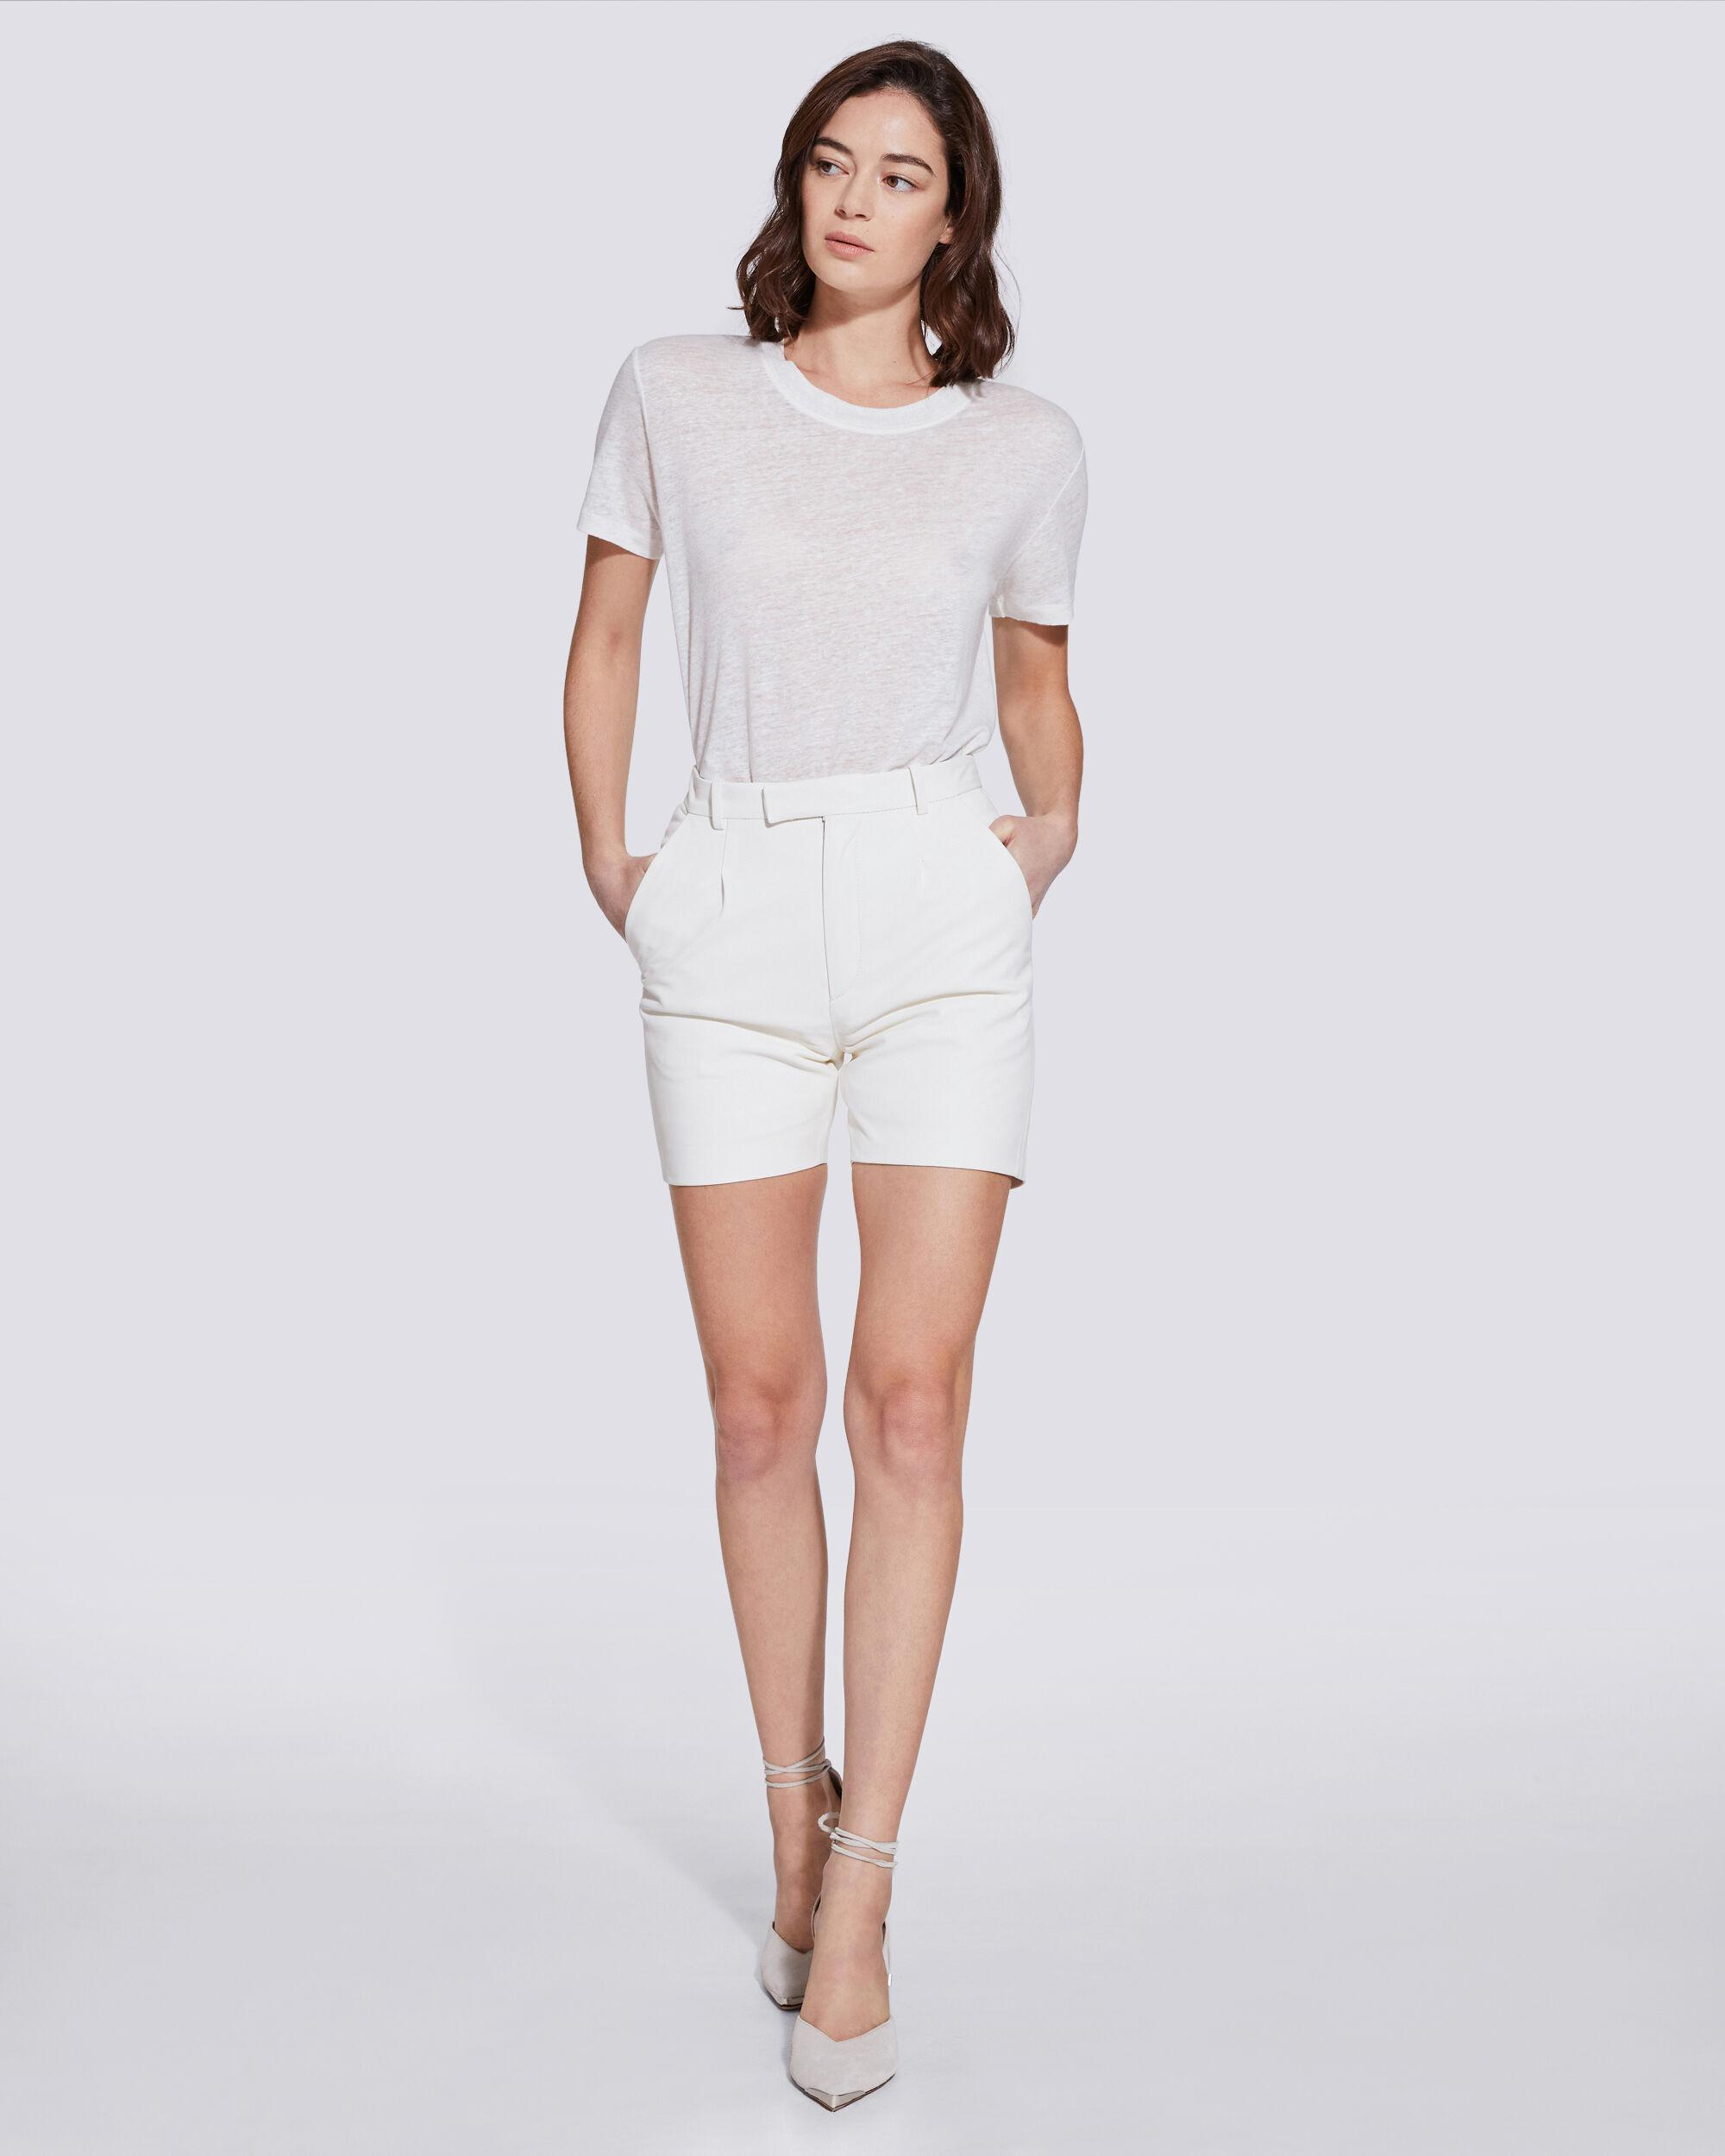 KLEIST MID LENGTH LEATHER SHORTS